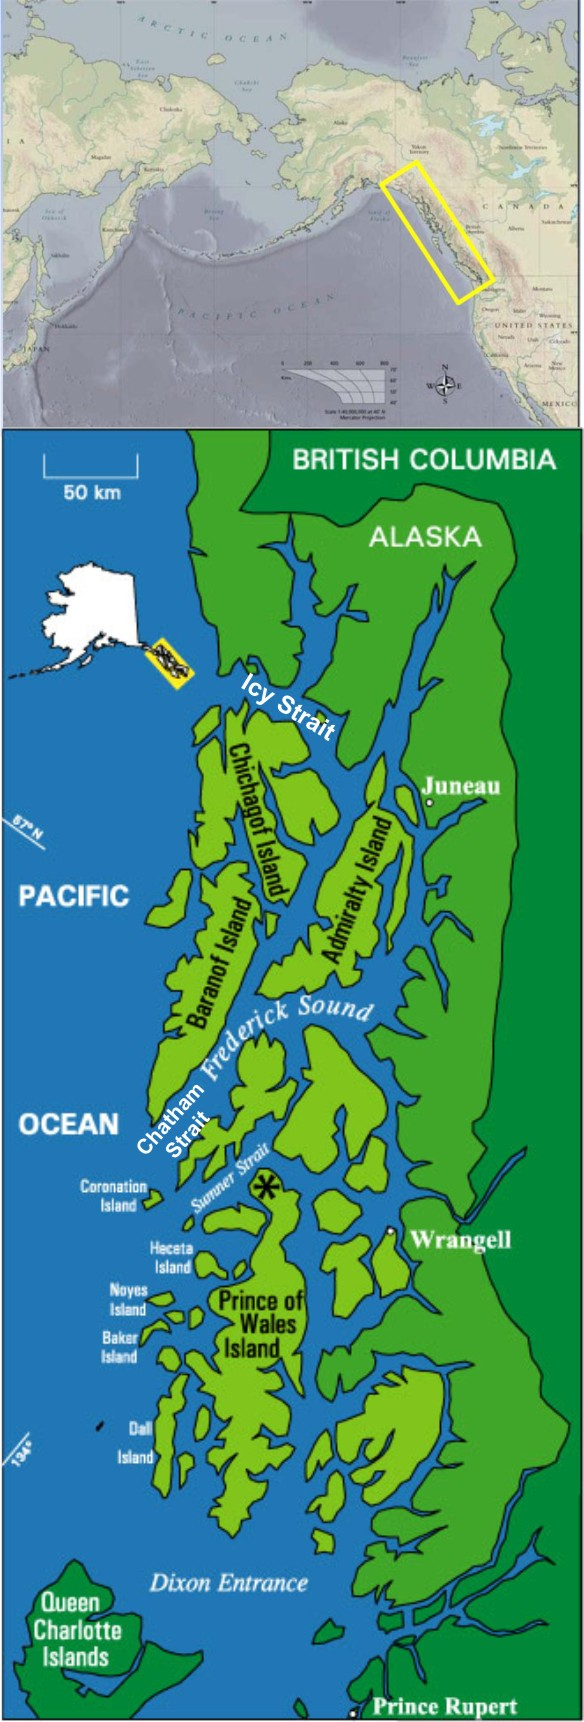 Tims Map Plus World on Prince Of Wales Island Alaska Map